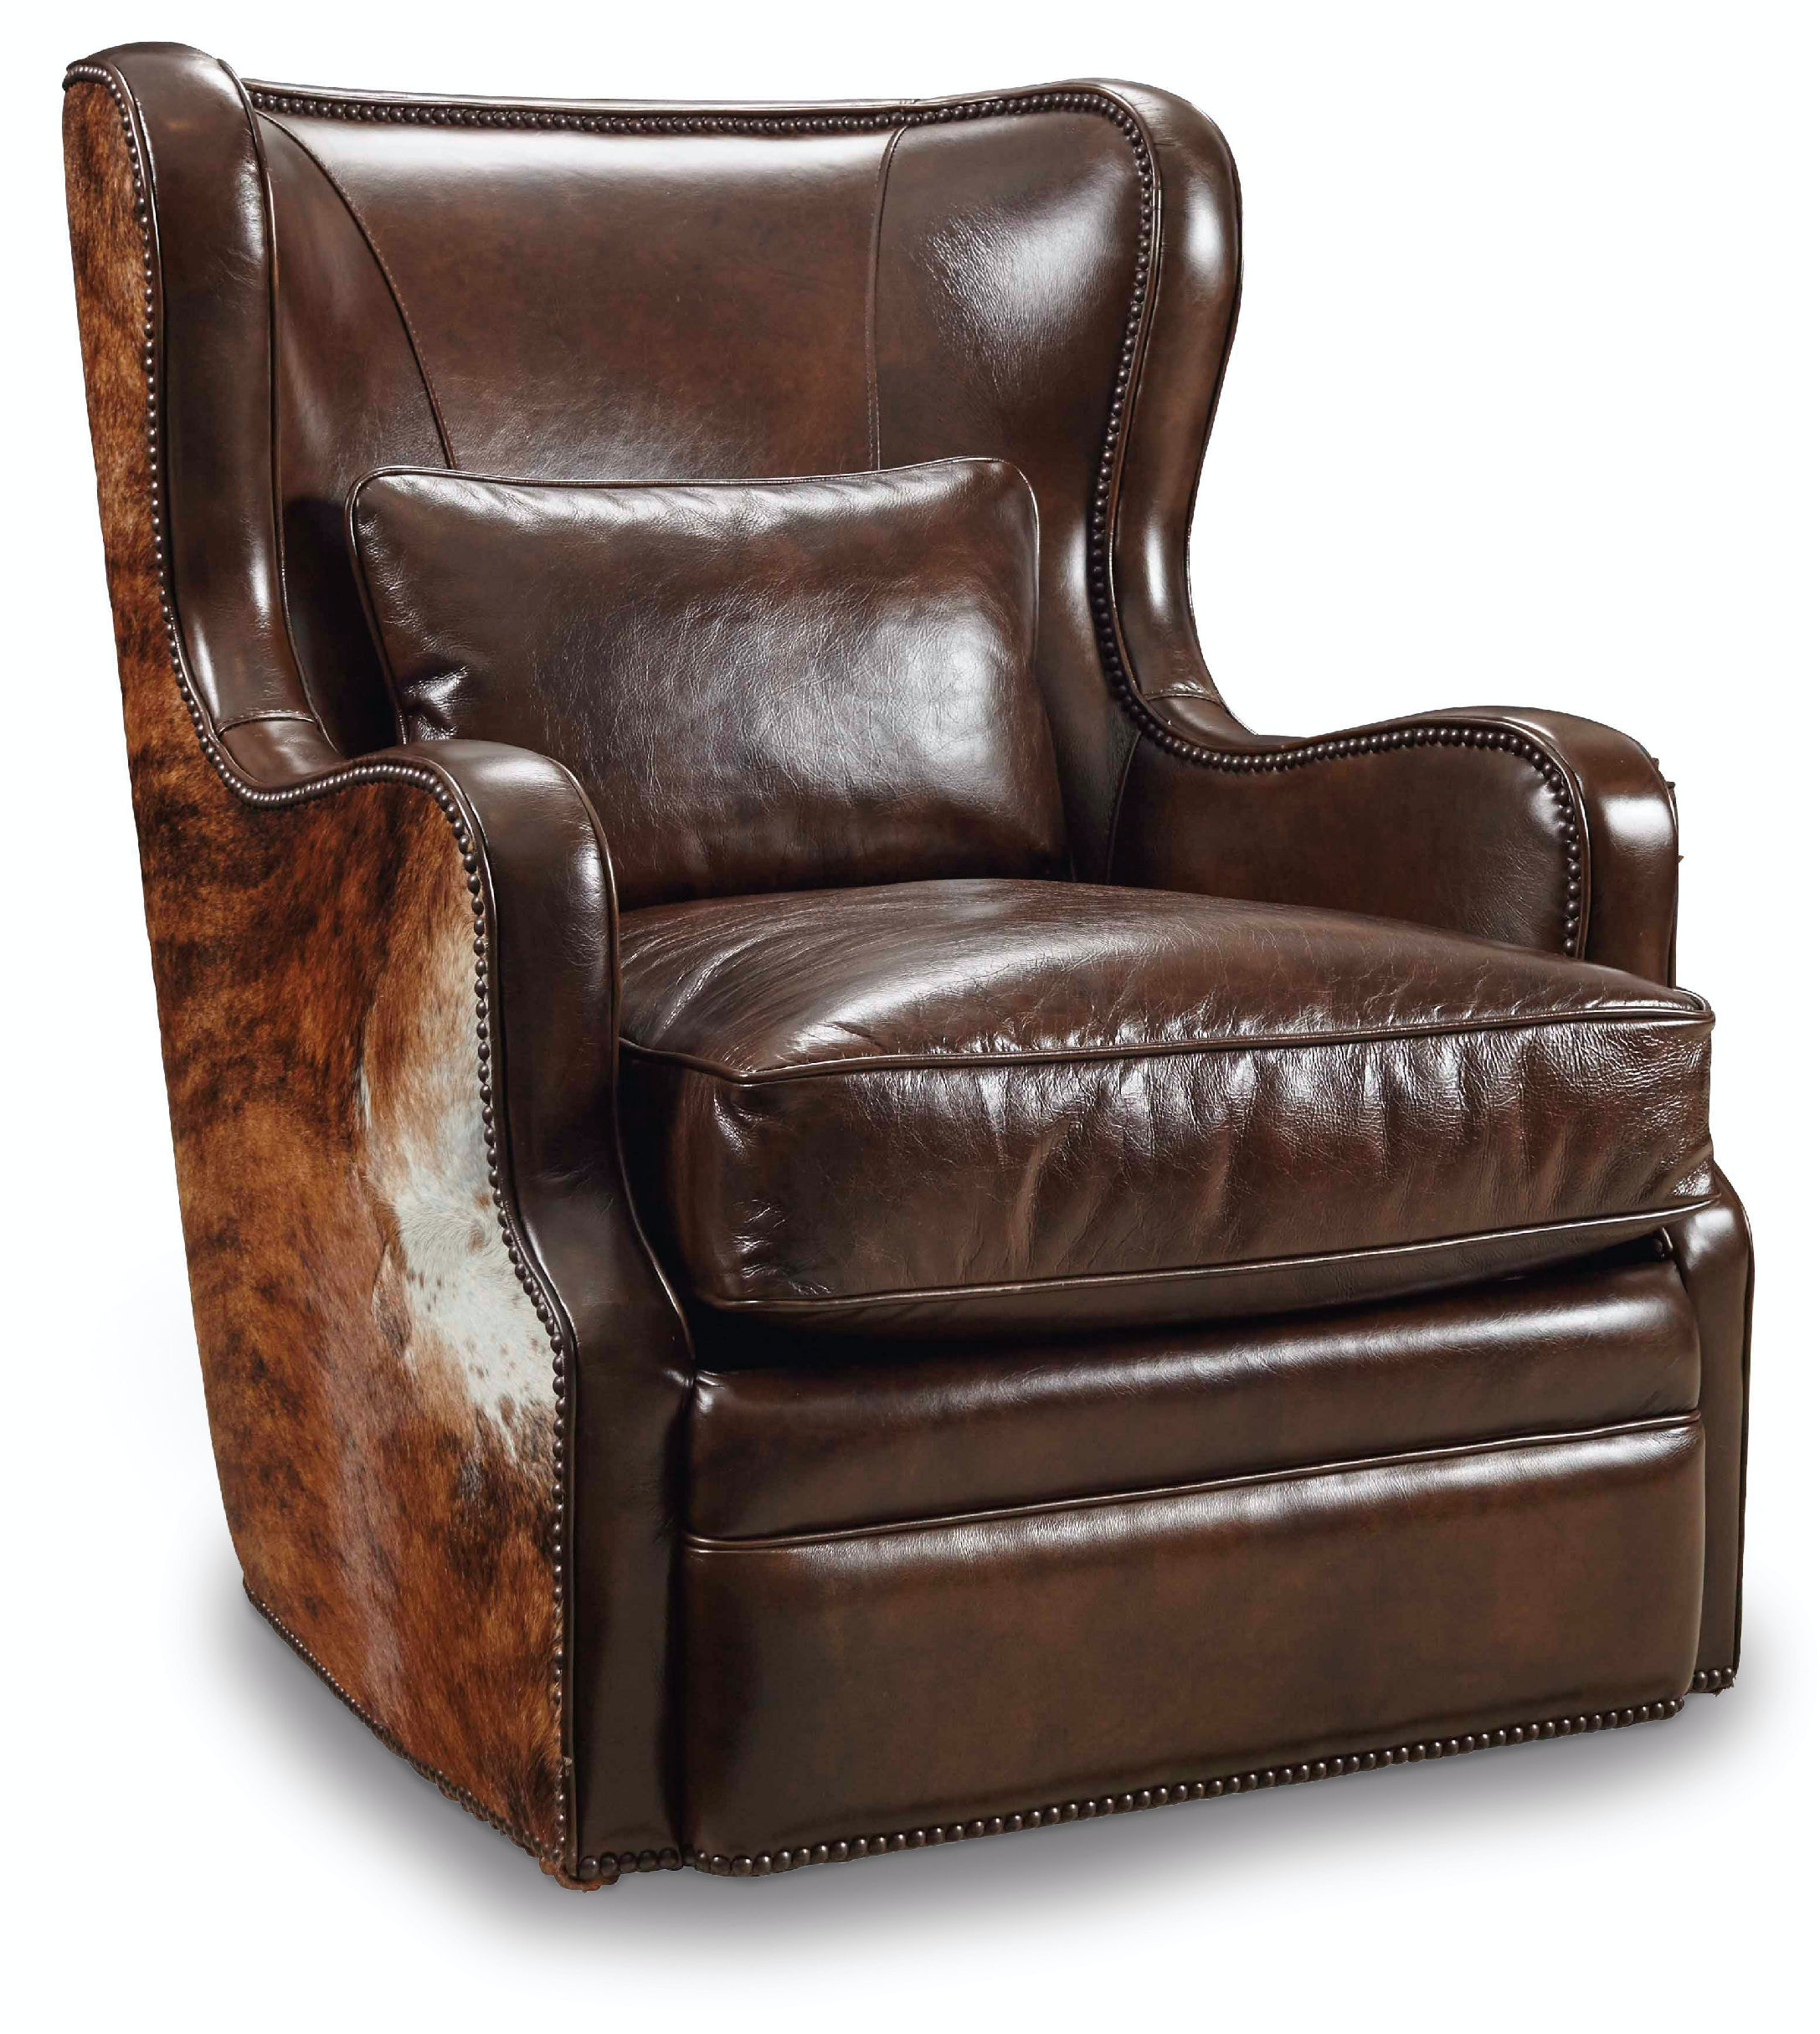 Hooker Furniture Living Room Wellington Swivel Club Chair CC418 SW 086    Wrights Furniture U0026 Flooring   Dieterich, IL